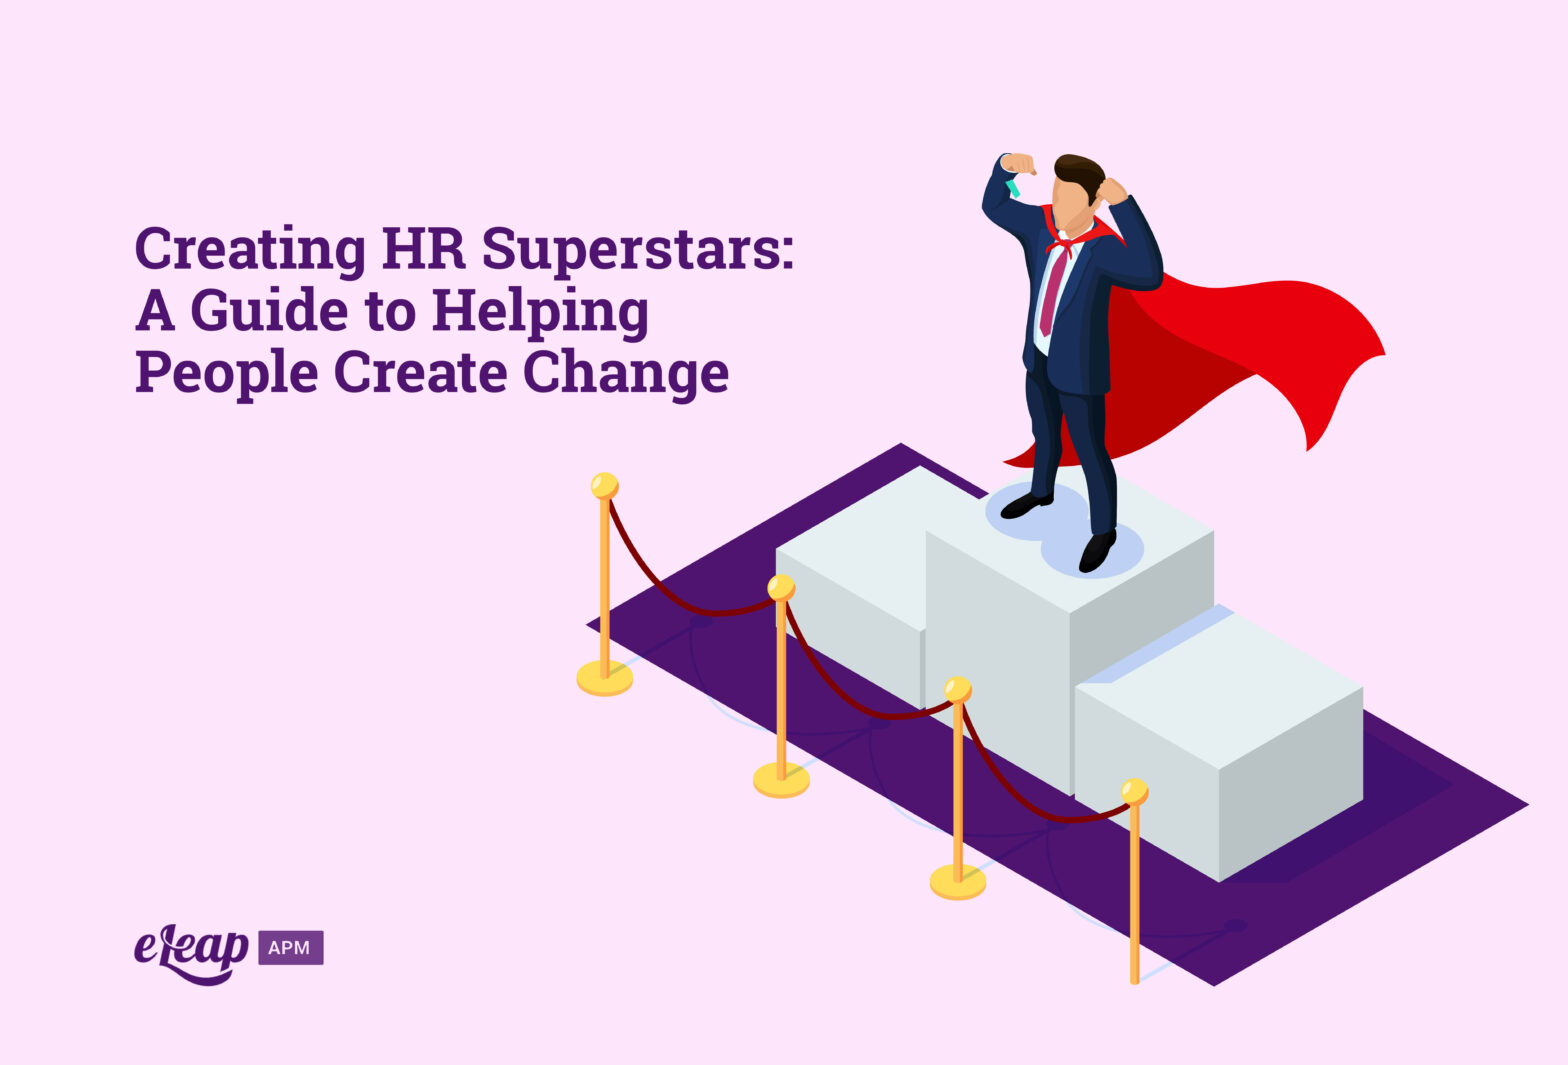 Creating HR Superstars: A Guide to Helping People Create Change